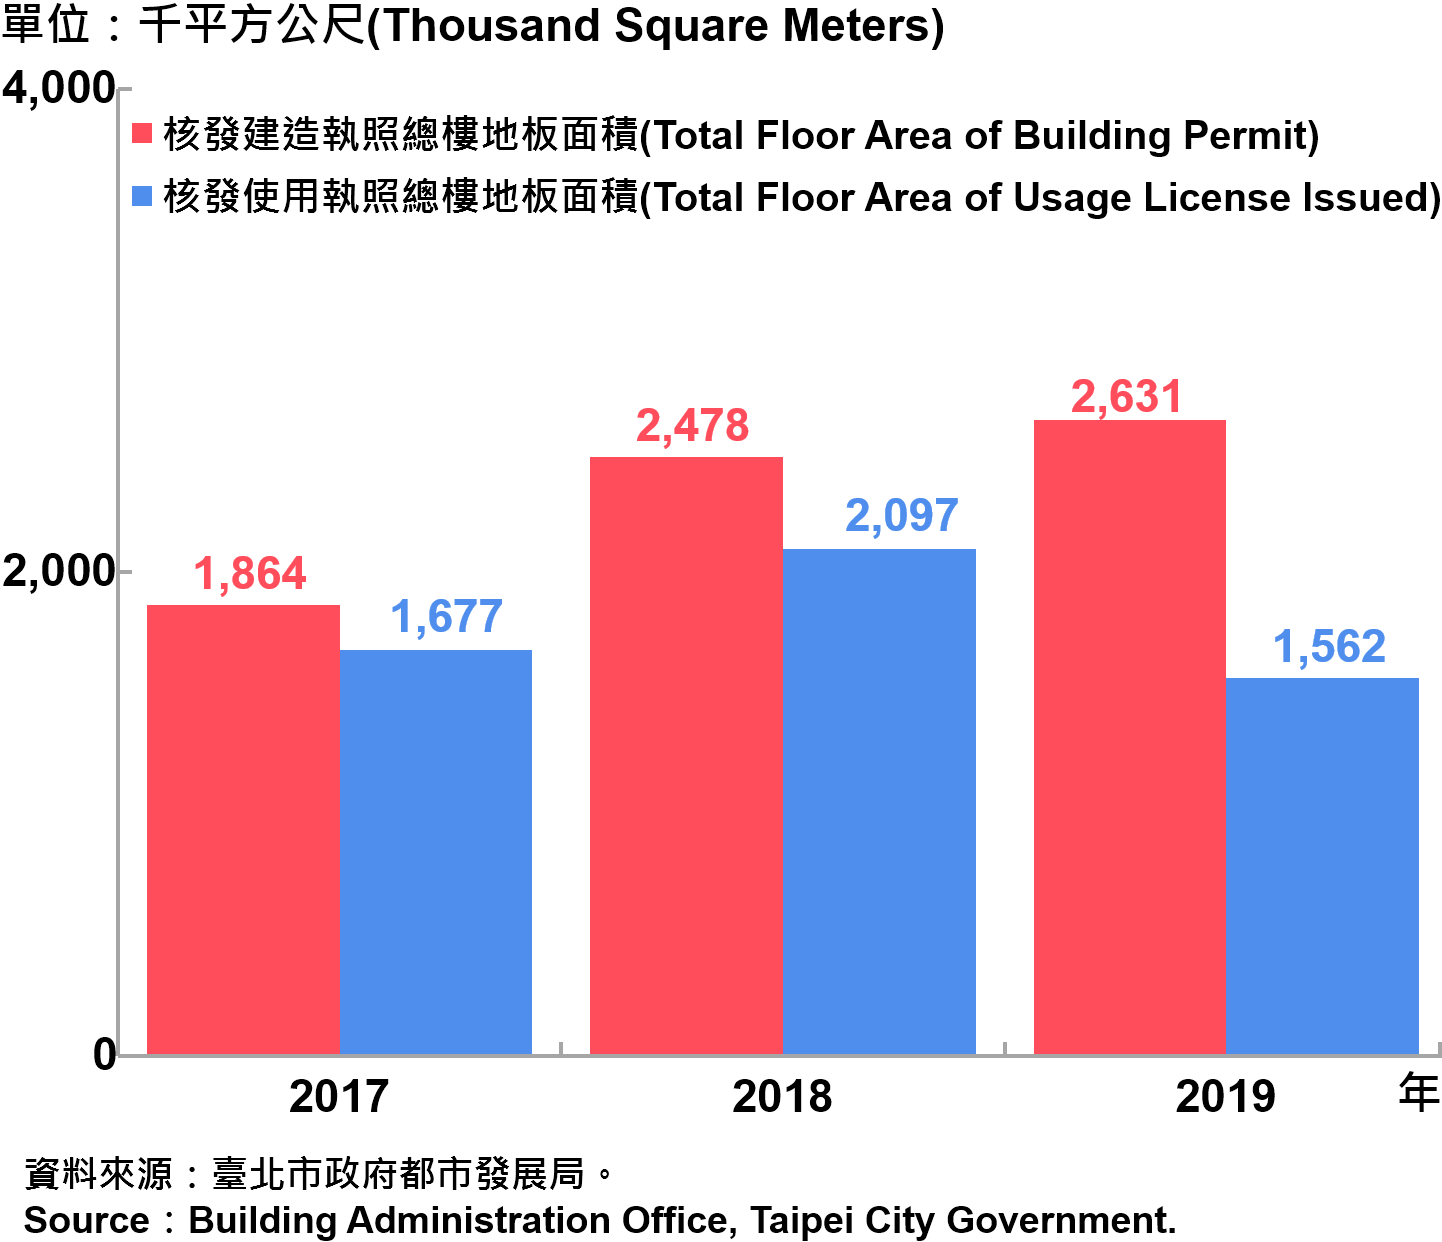 臺北市核發建築物執照與使用執照總樓地板面積—2019 Total Floor Area of Building Permit and Usage License Issued in Taipei City—2019